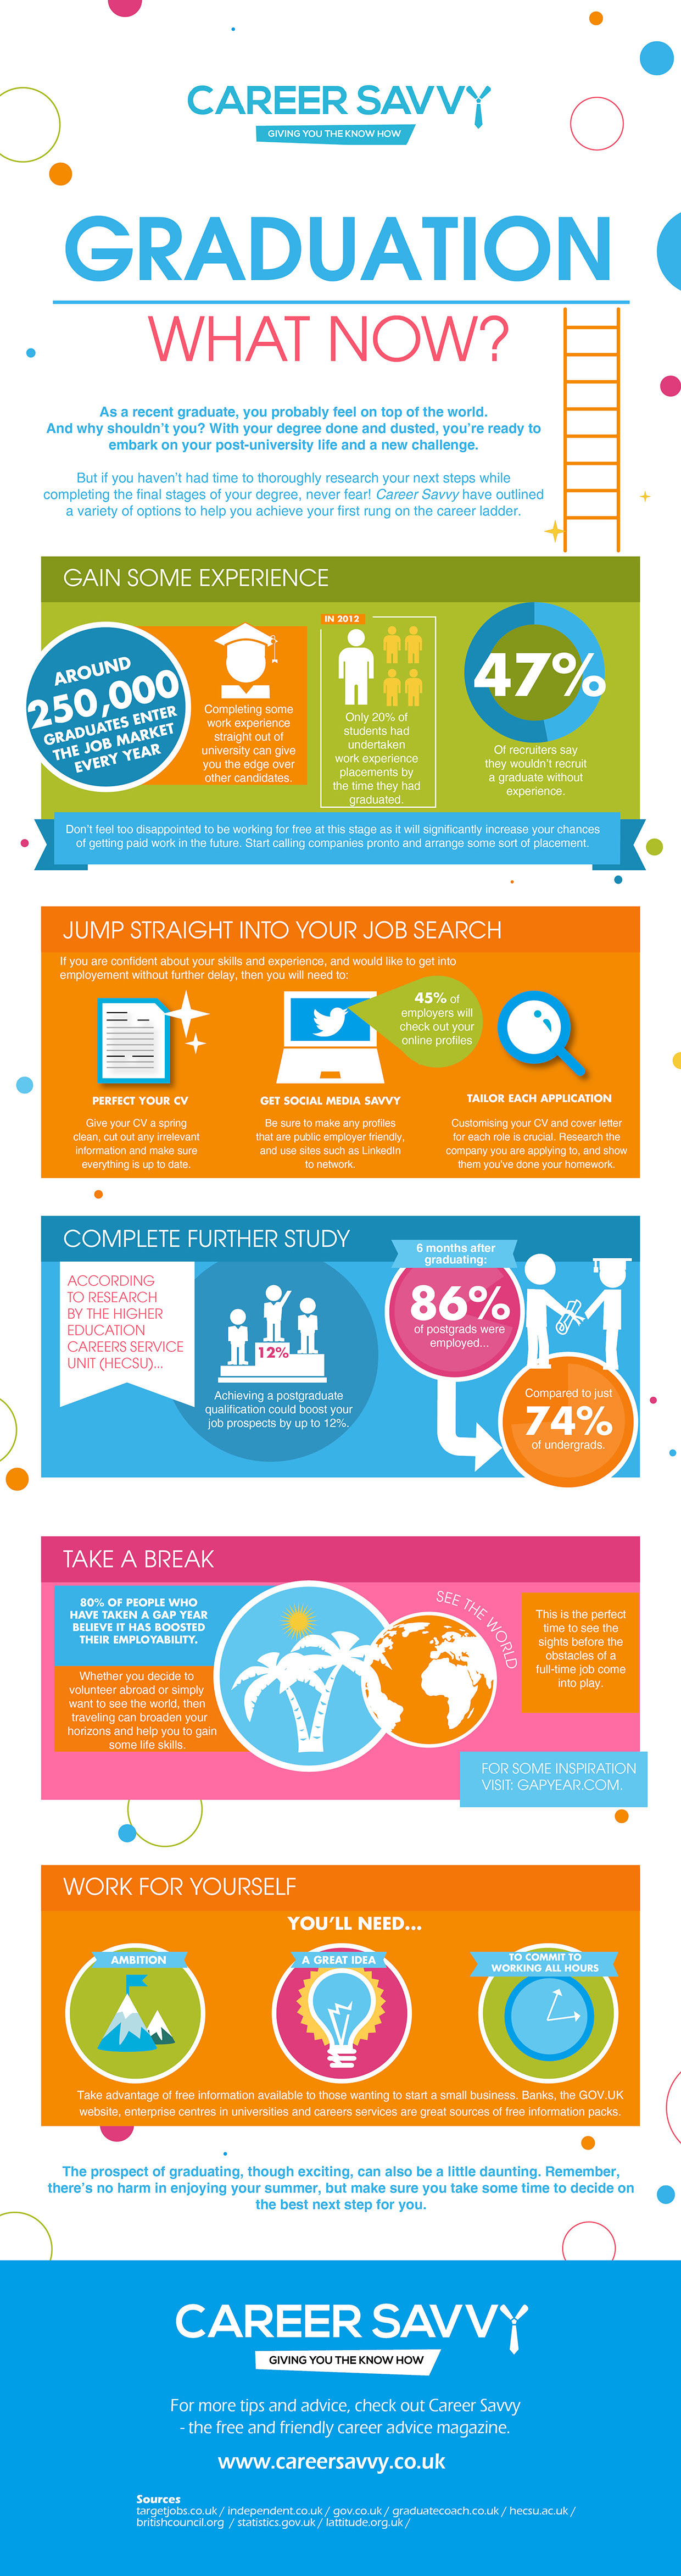 Infographic: Graduation - What Now? #infographic